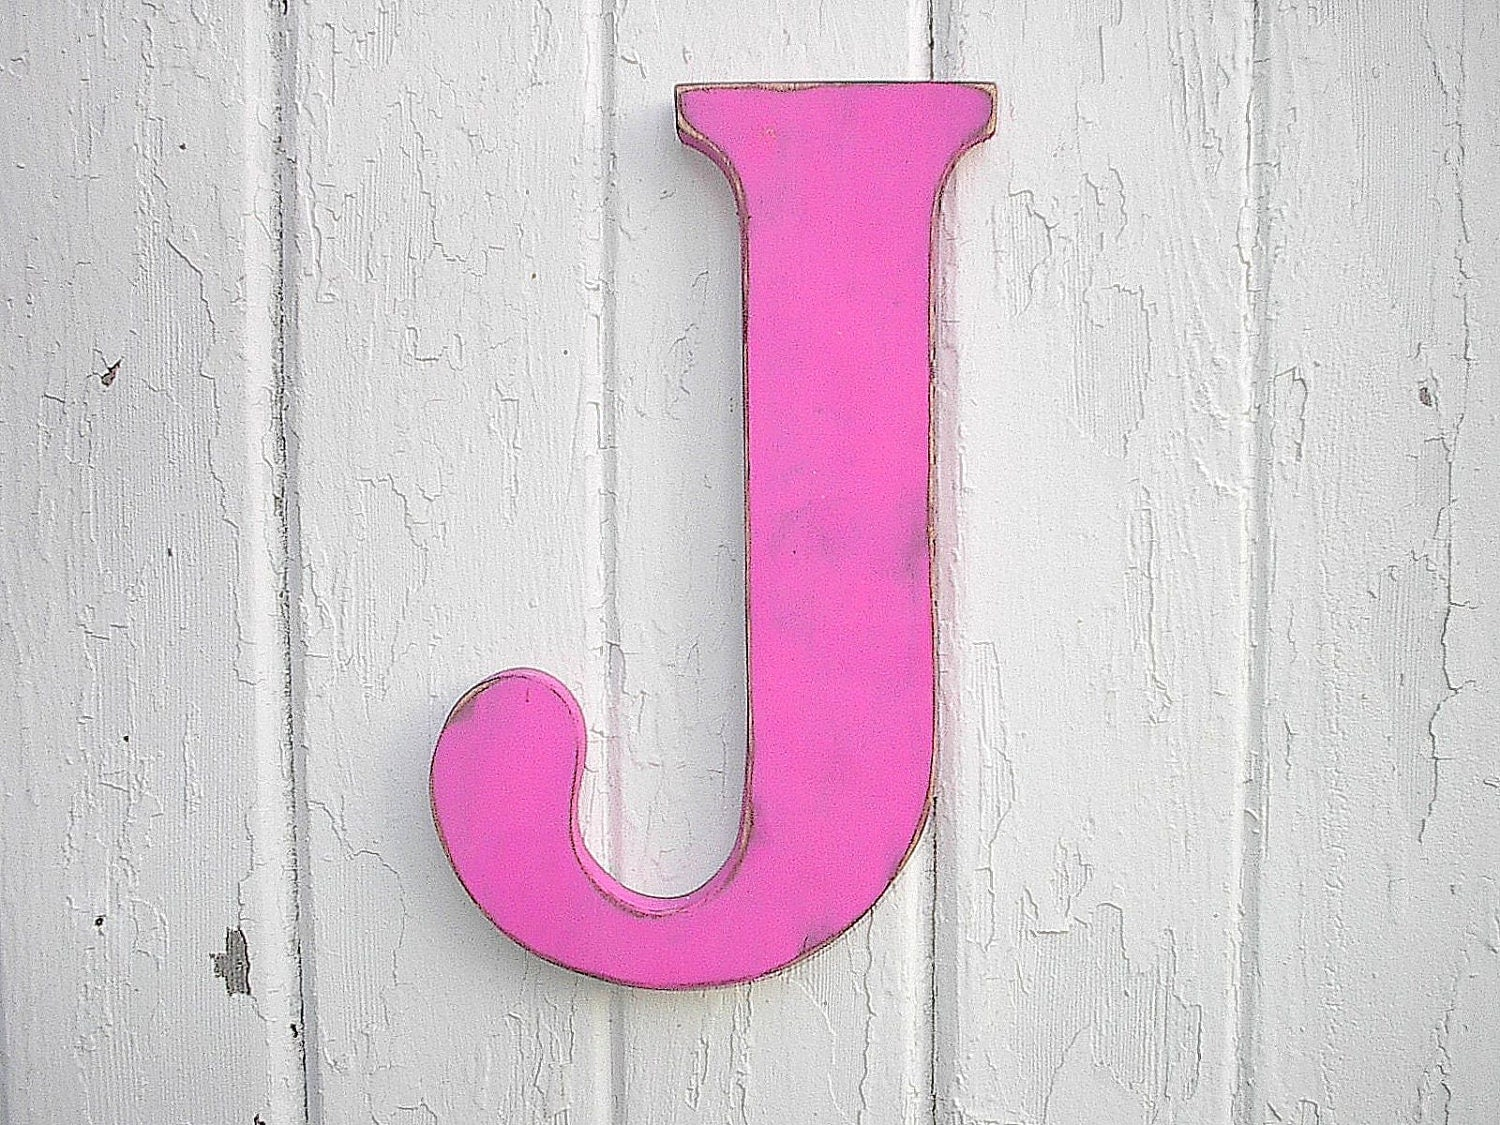 Rustic wooden letter j 12 girls wall decor art fuchsia - Wood letter wall decor ...